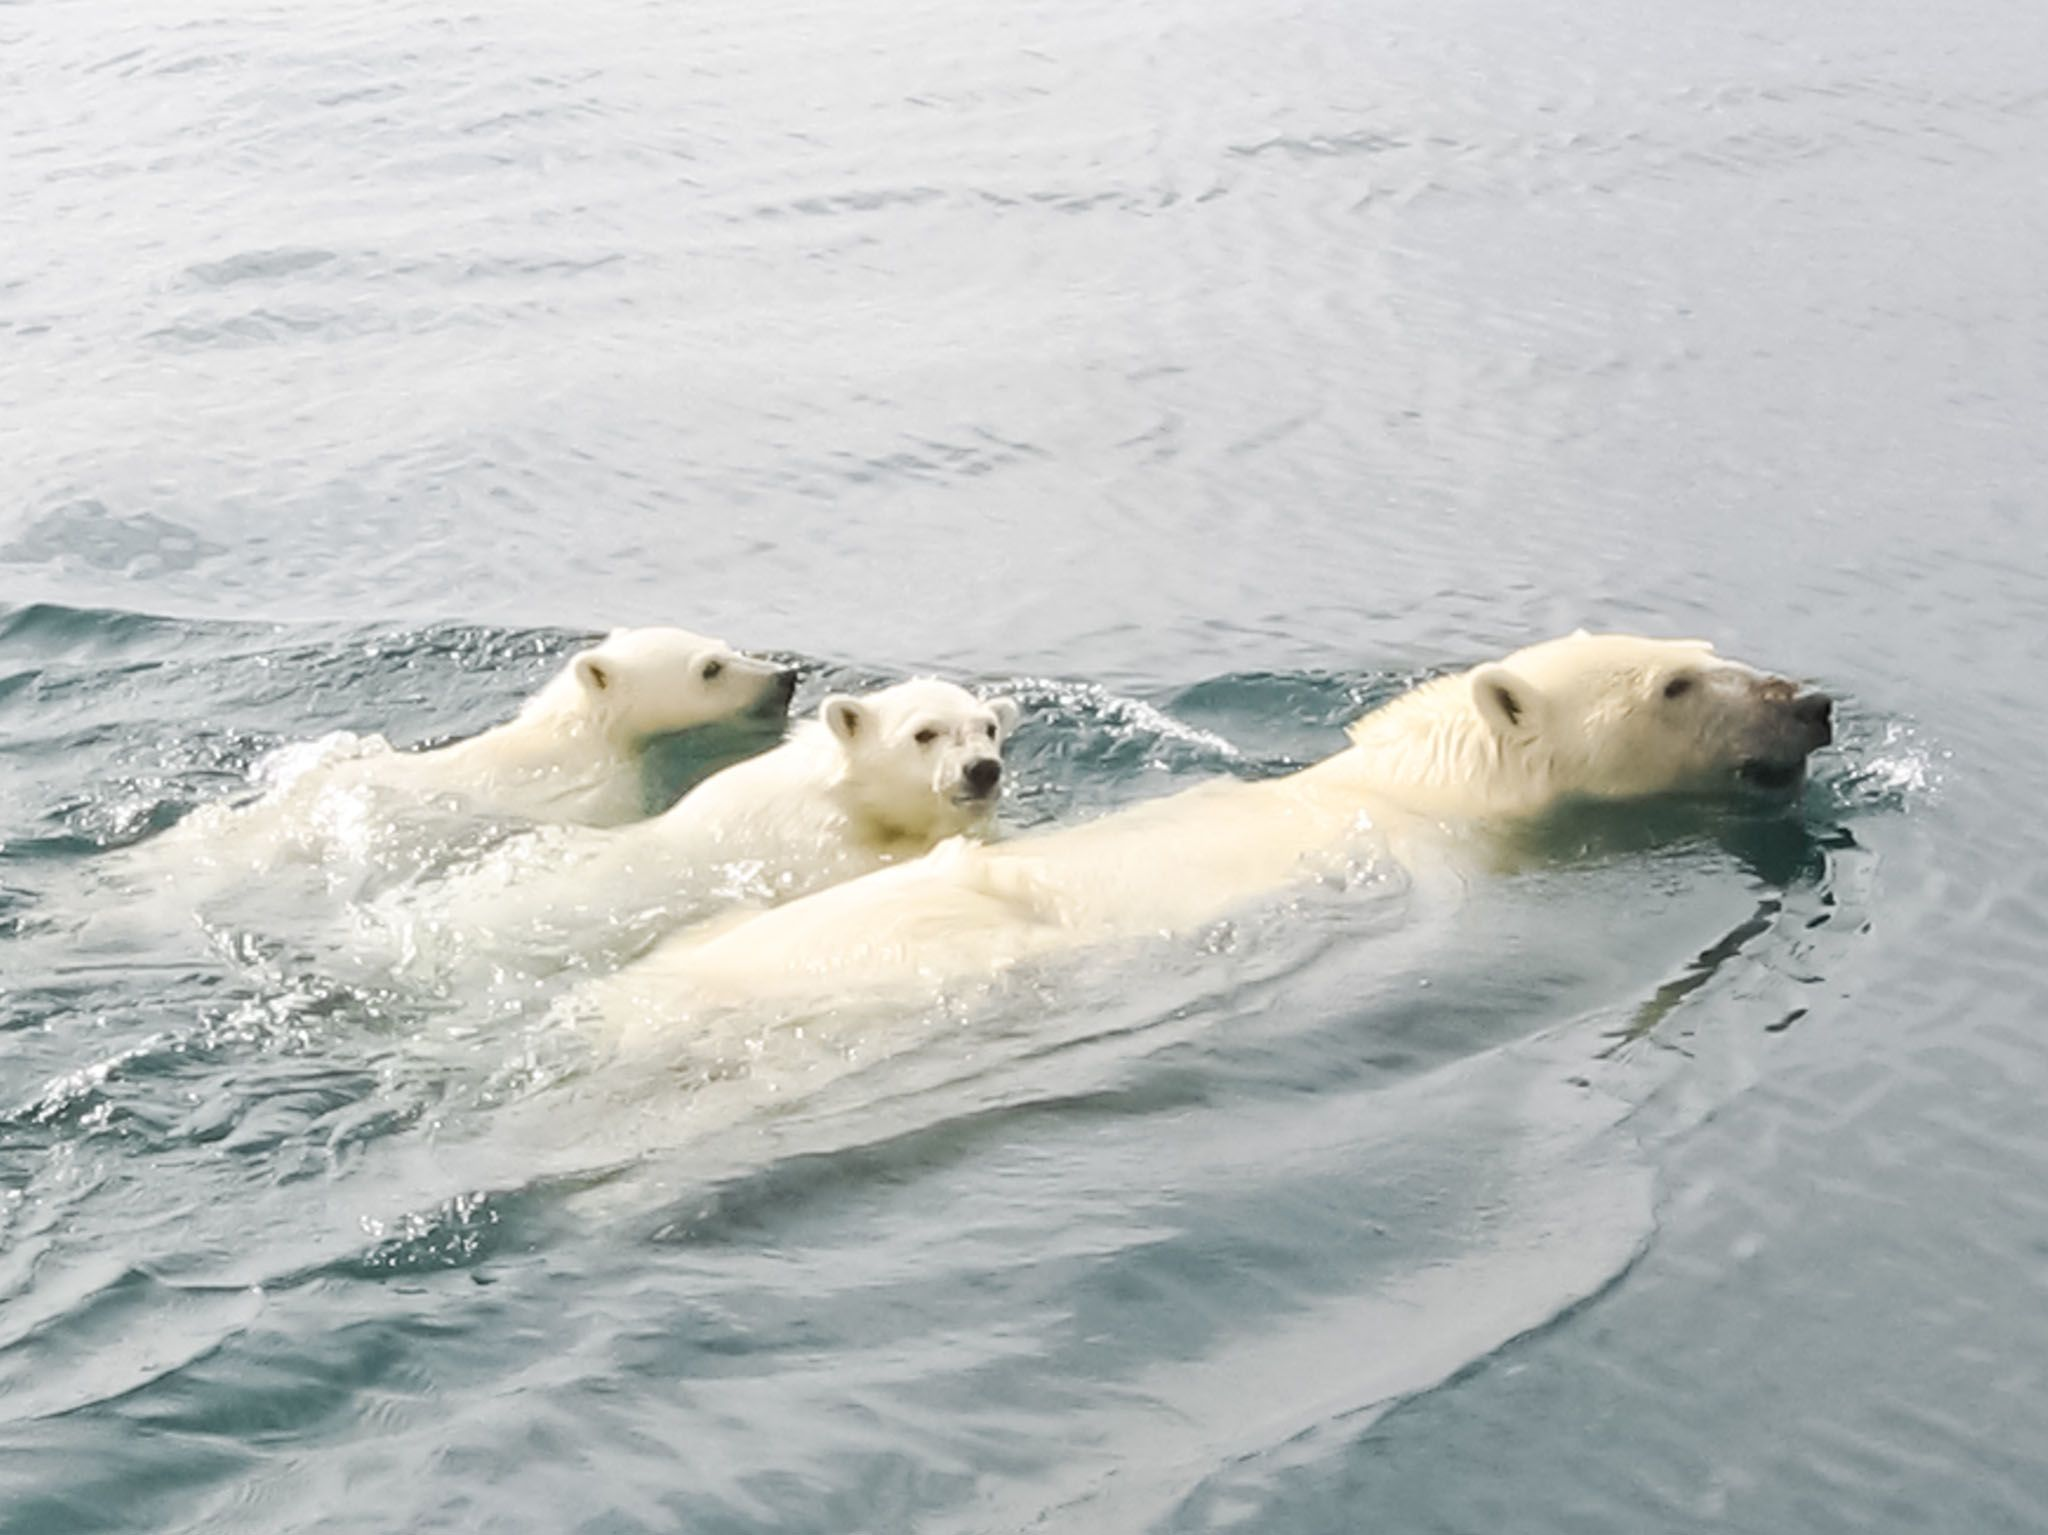 Polar Bear and cubs swimming. This image is from Kingdom of The Polar Bears. [Photo of the day - March 2021]